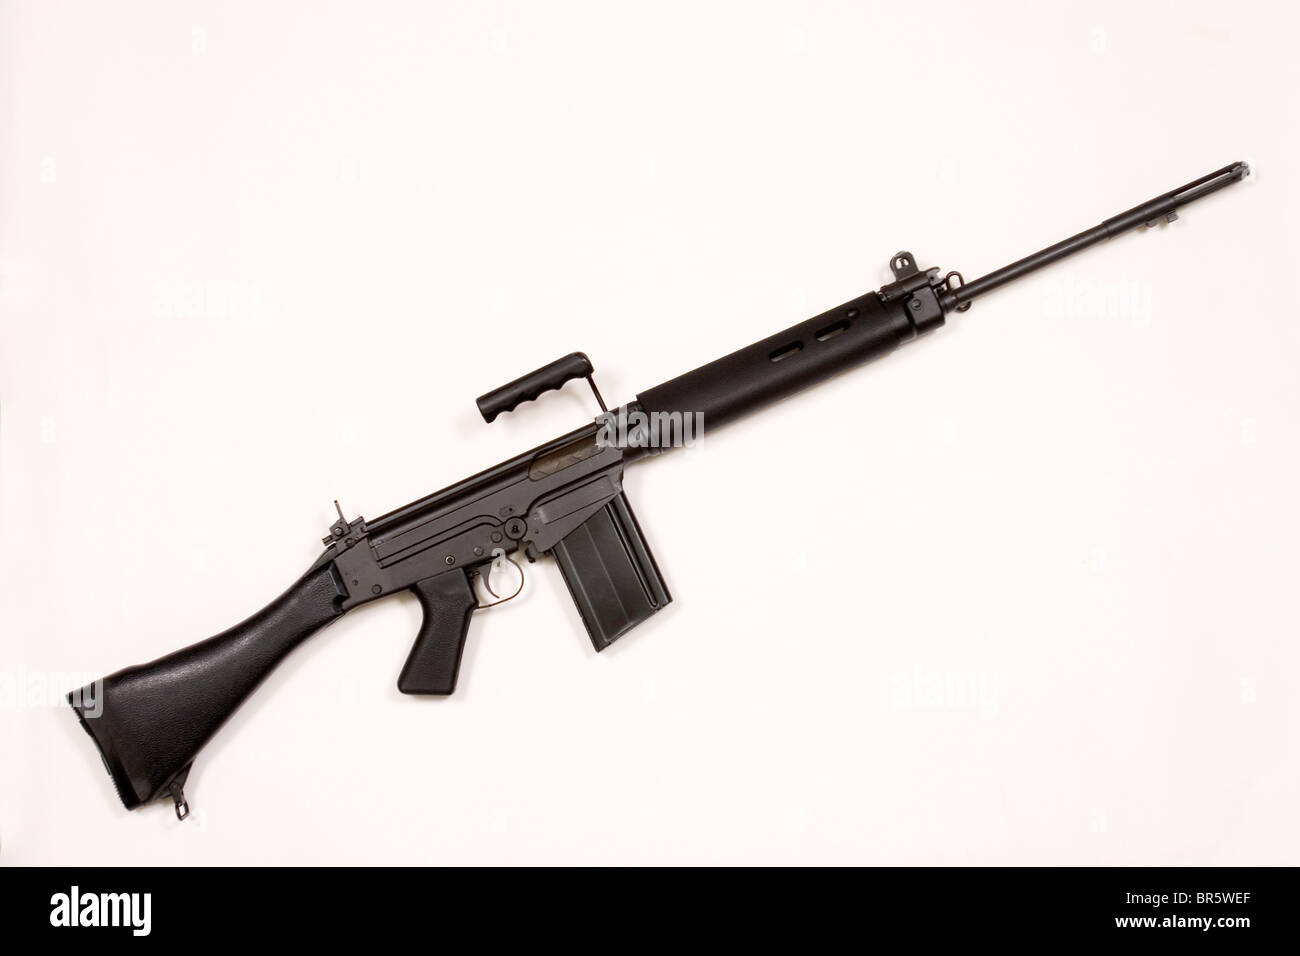 A L1A1 rifle used during Bloody Sunday in 1972 and now used in Sierra Leone by rebel forces. - Stock Image